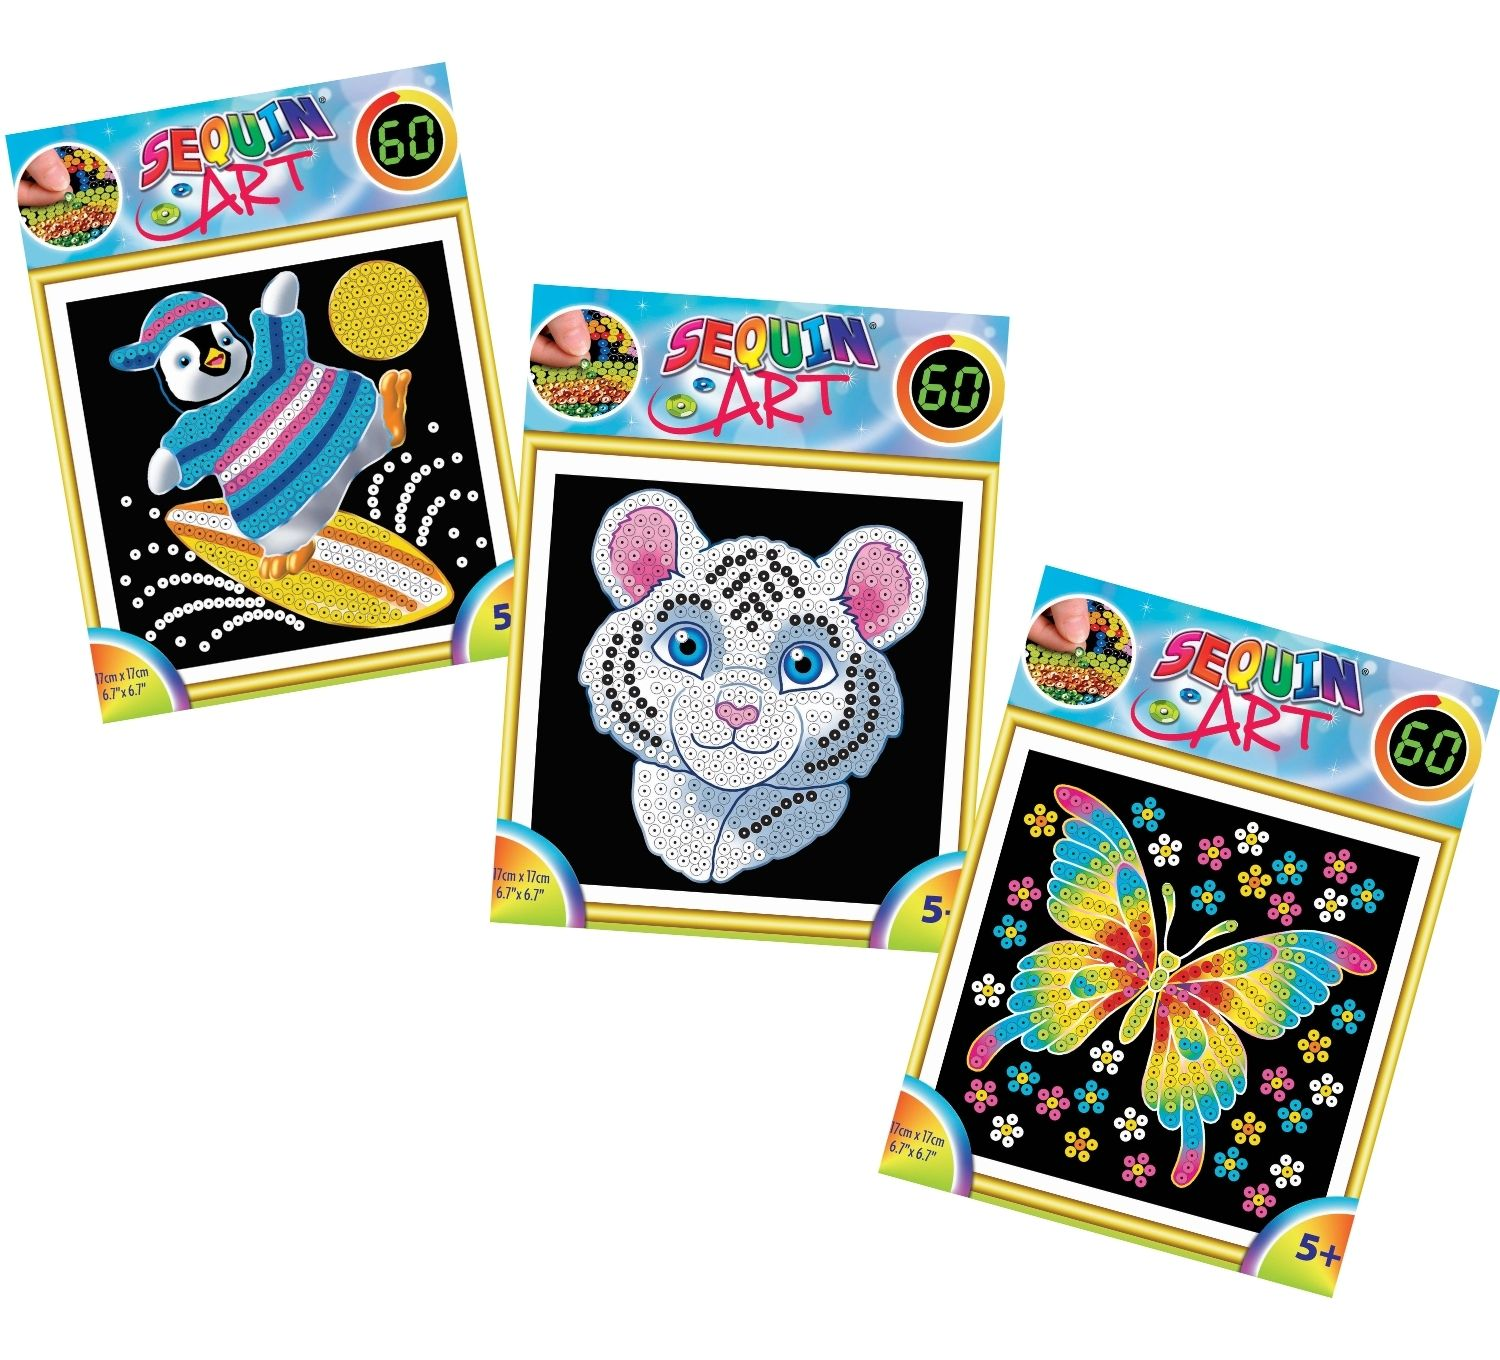 Sequin Art 60 craft kits bundle